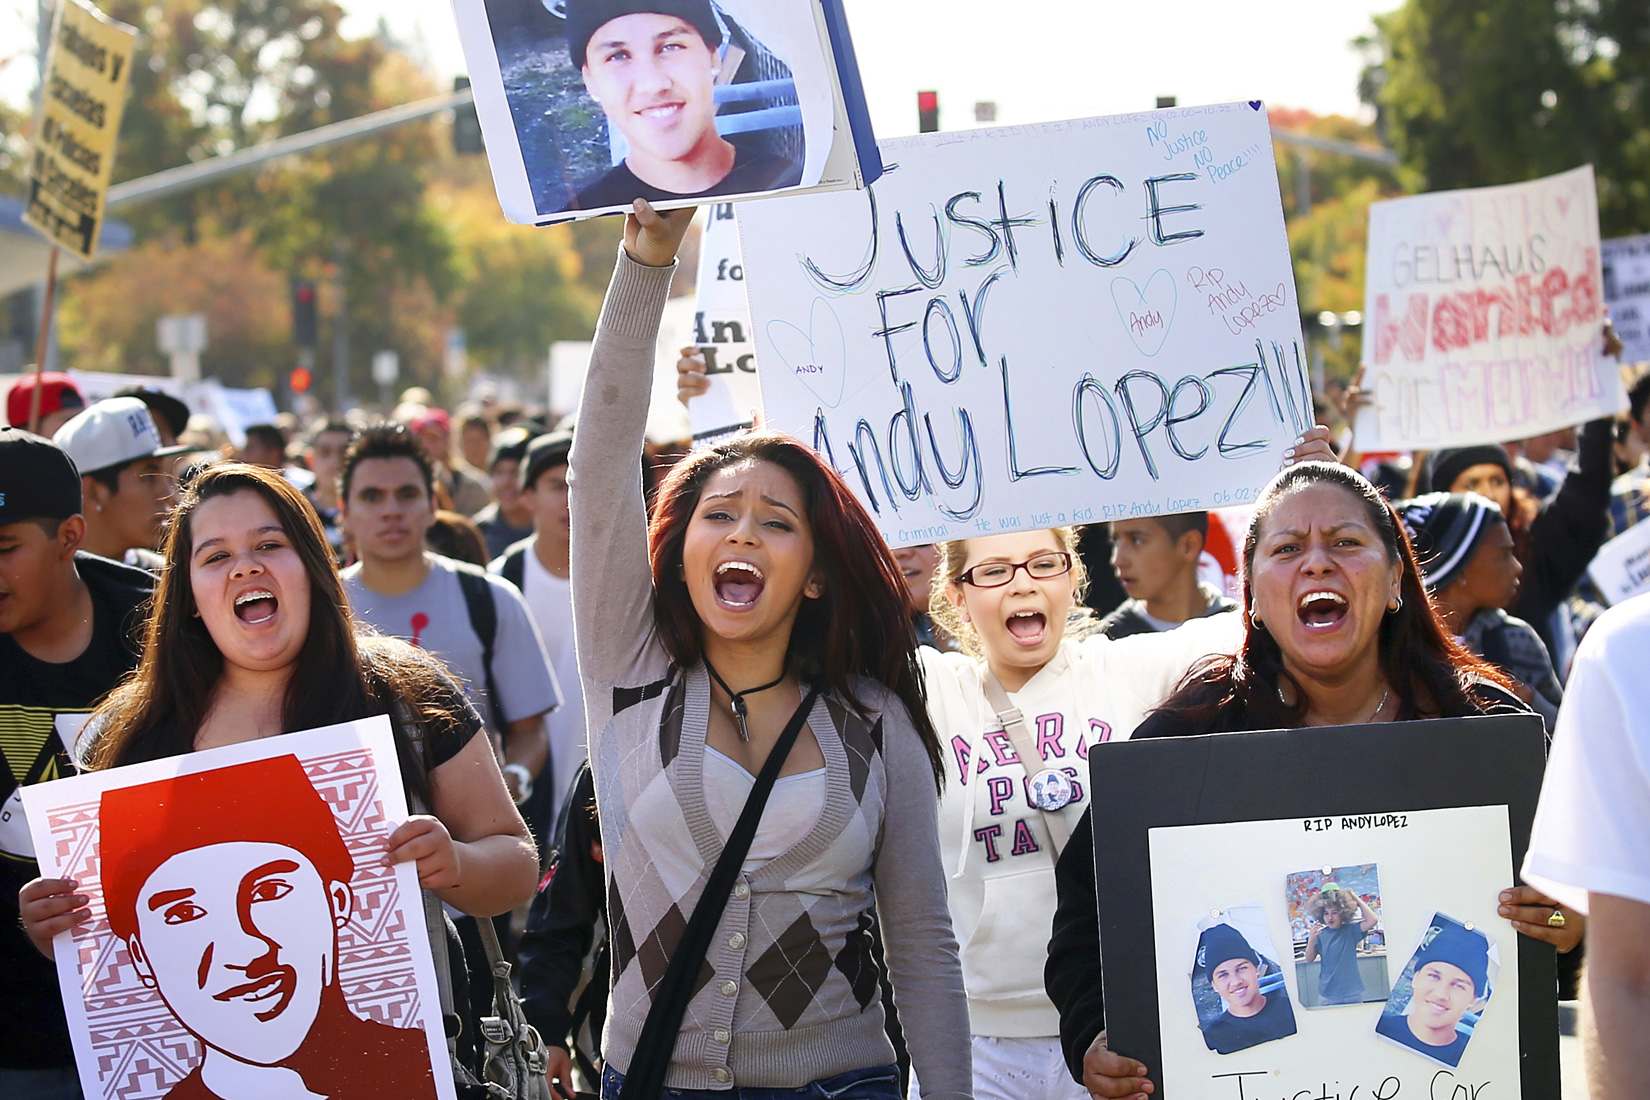 Rosiee Meraz, center, marches towards the Sonoma County Sheriff's offices during a protest over the death of Andy Lopez in Santa Rosa on Tuesday, October 29, 2013. (Conner Jay/The Press Democrat)